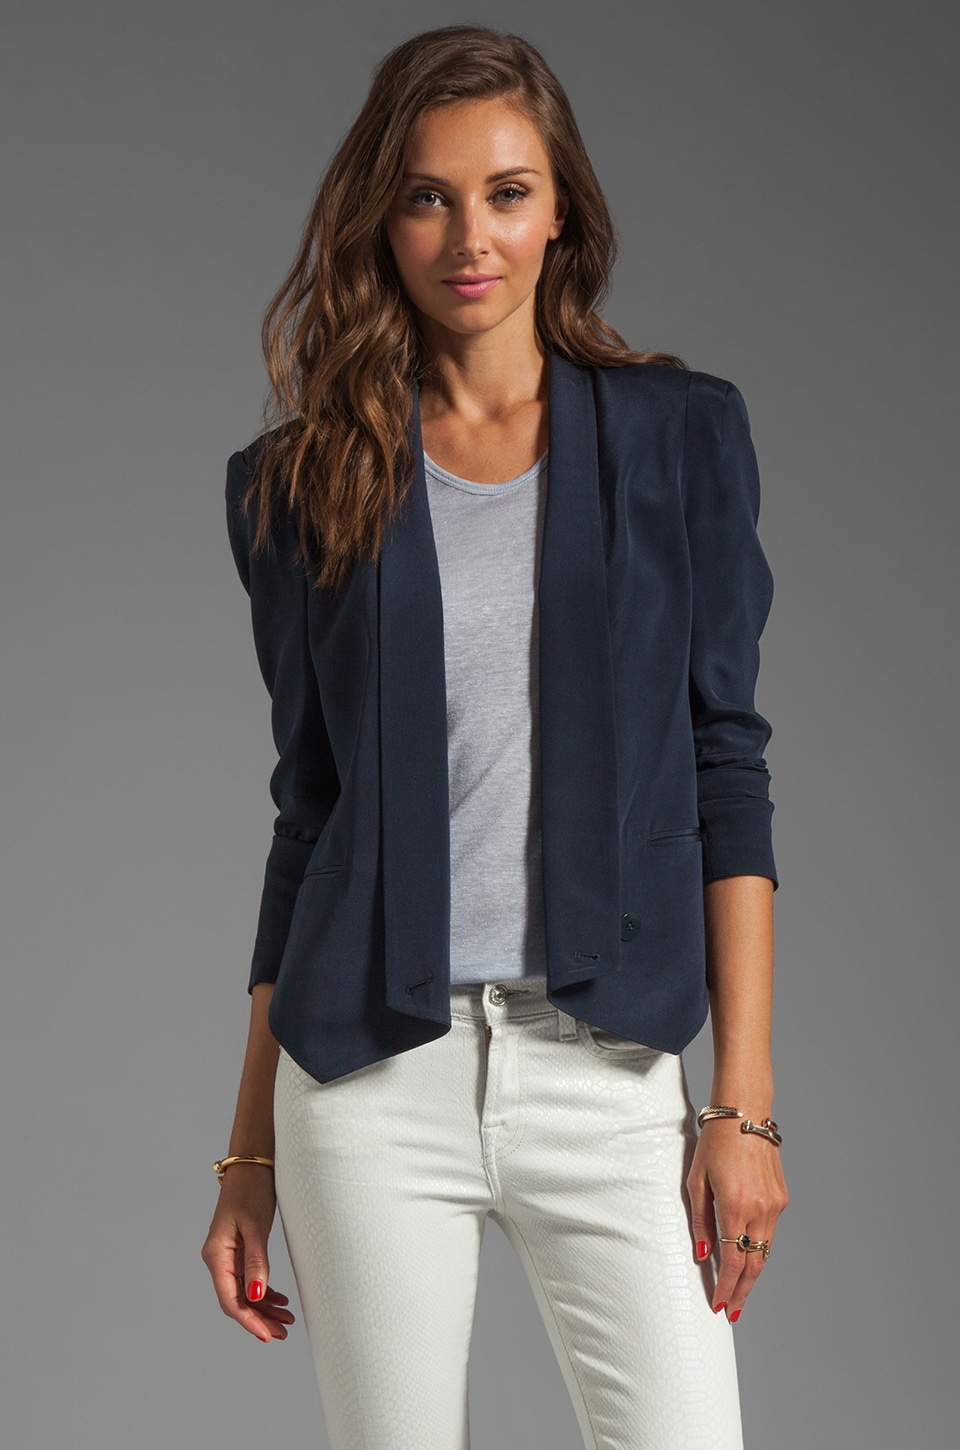 Rebecca Minkoff Becky Jacket in True Navy